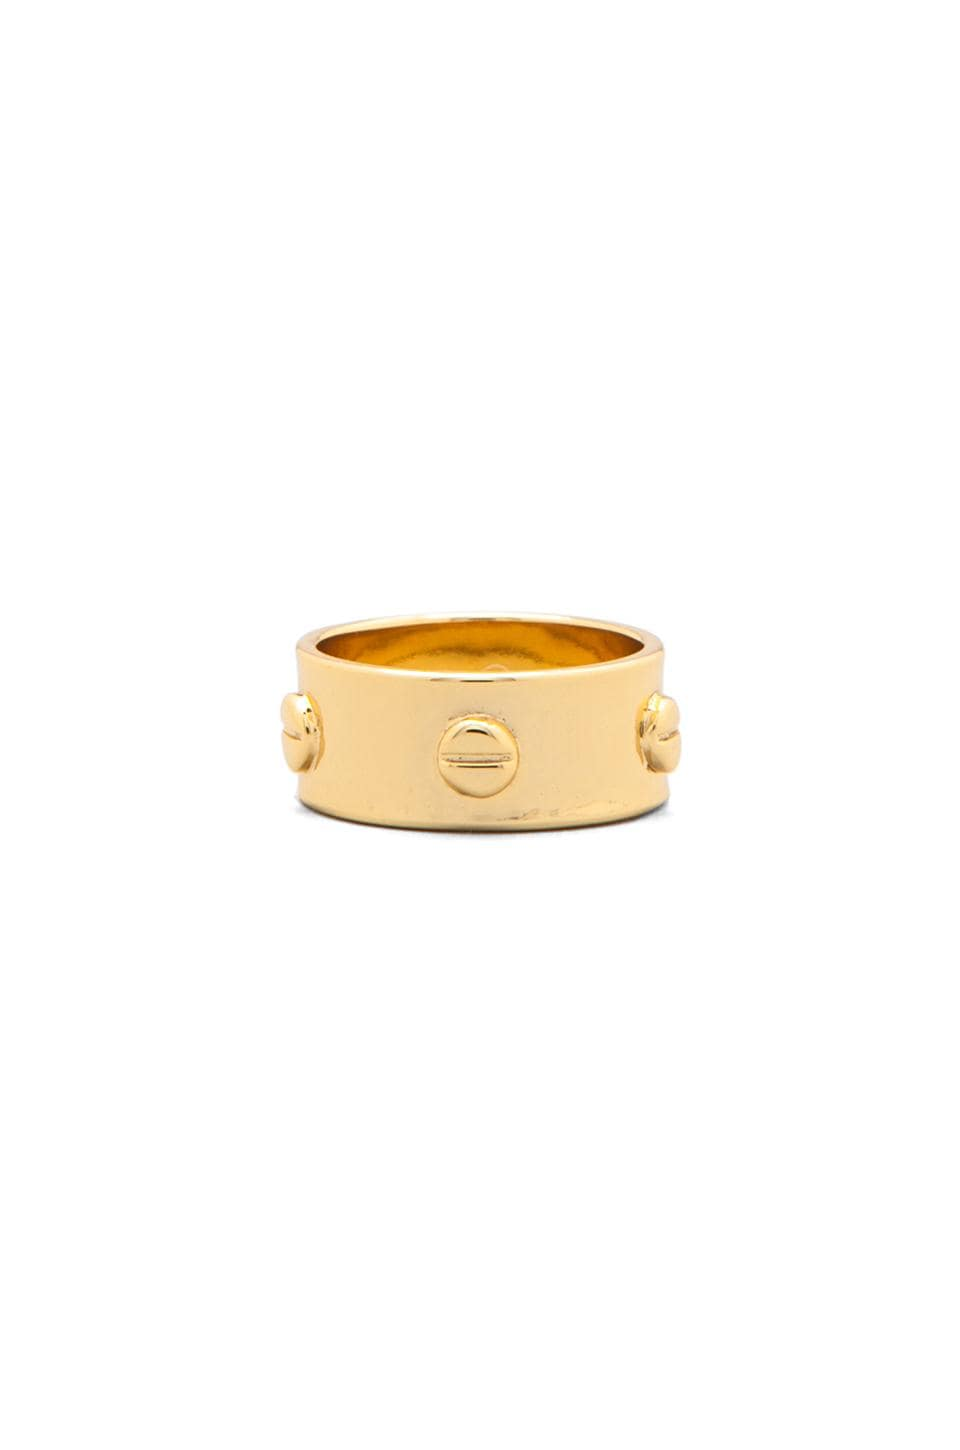 gorjana Chaplin Ring in Gold